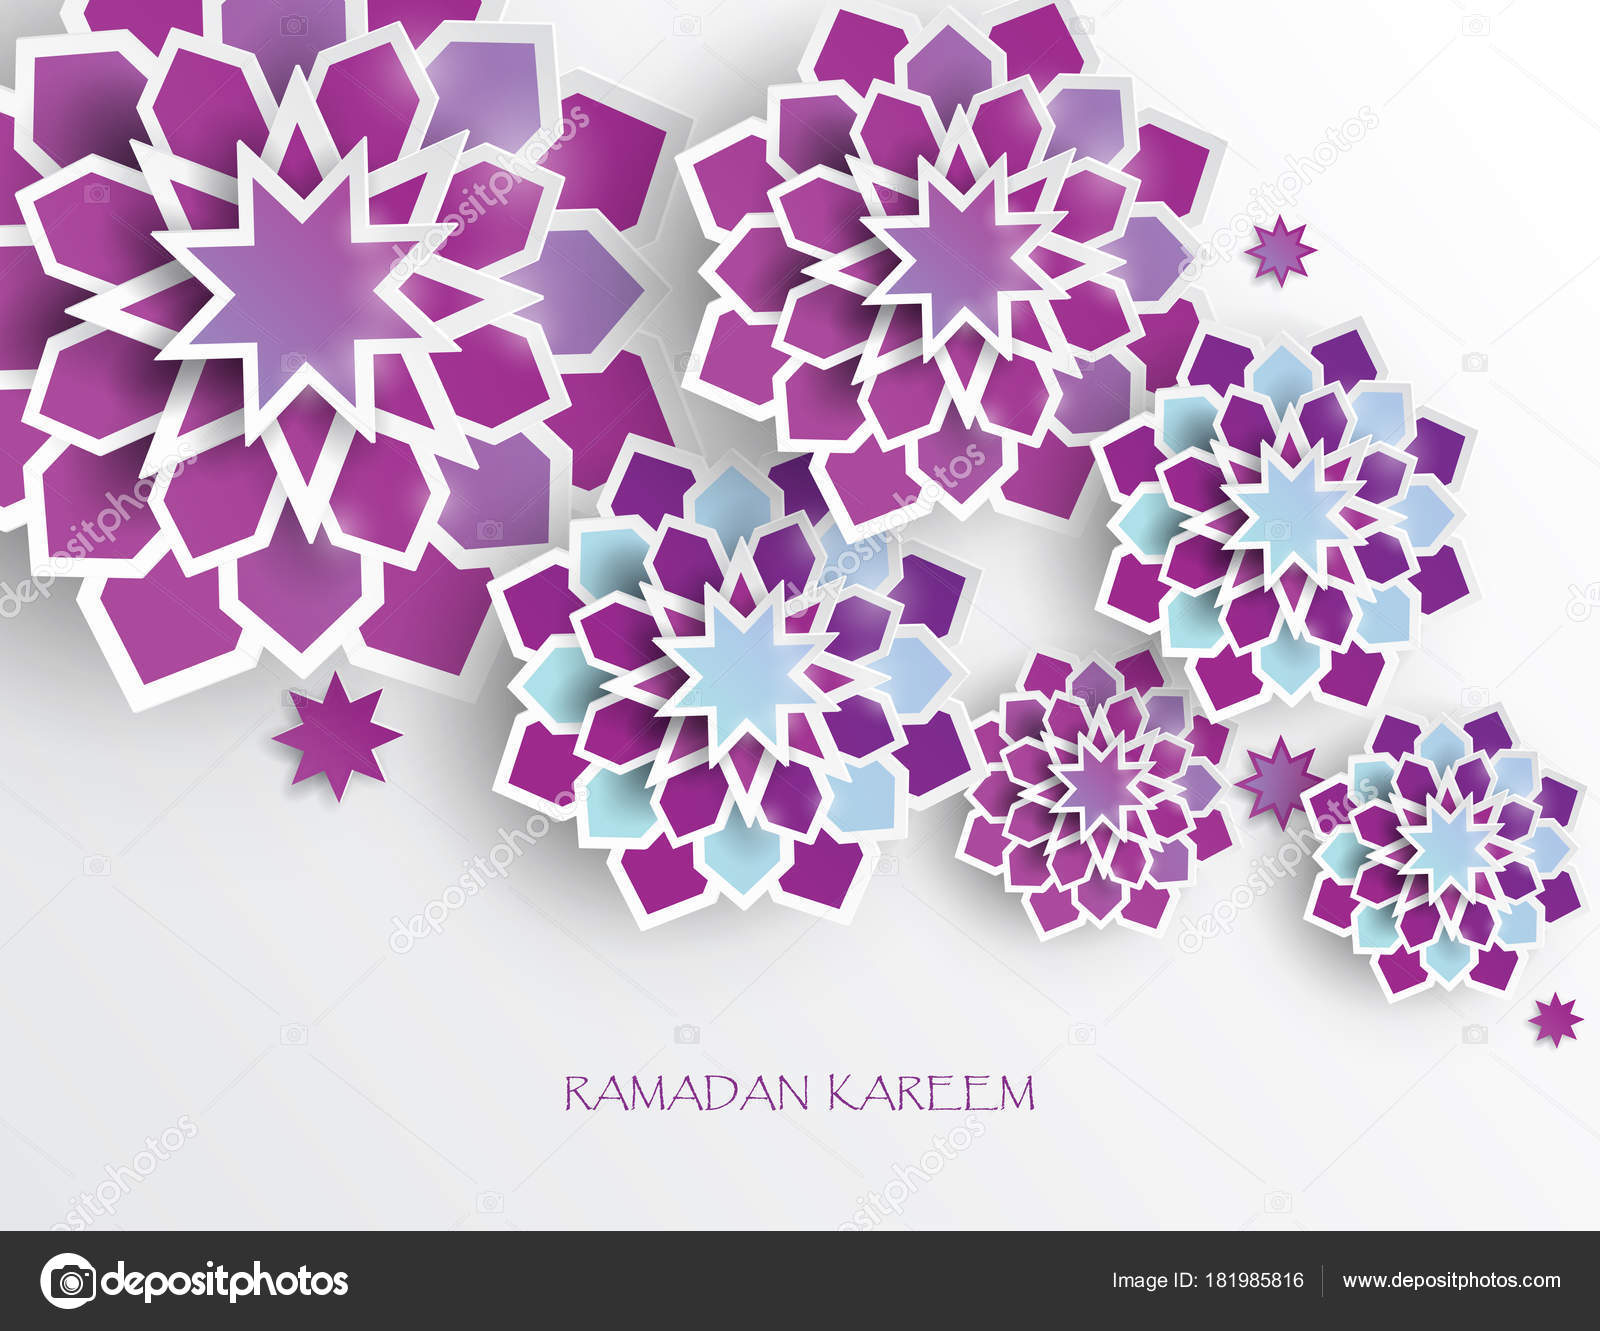 Greeting card intricate arabic paper graphic islamic geometric art greeting card intricate arabic paper graphic islamic geometric art ramadan stock vector m4hsunfo